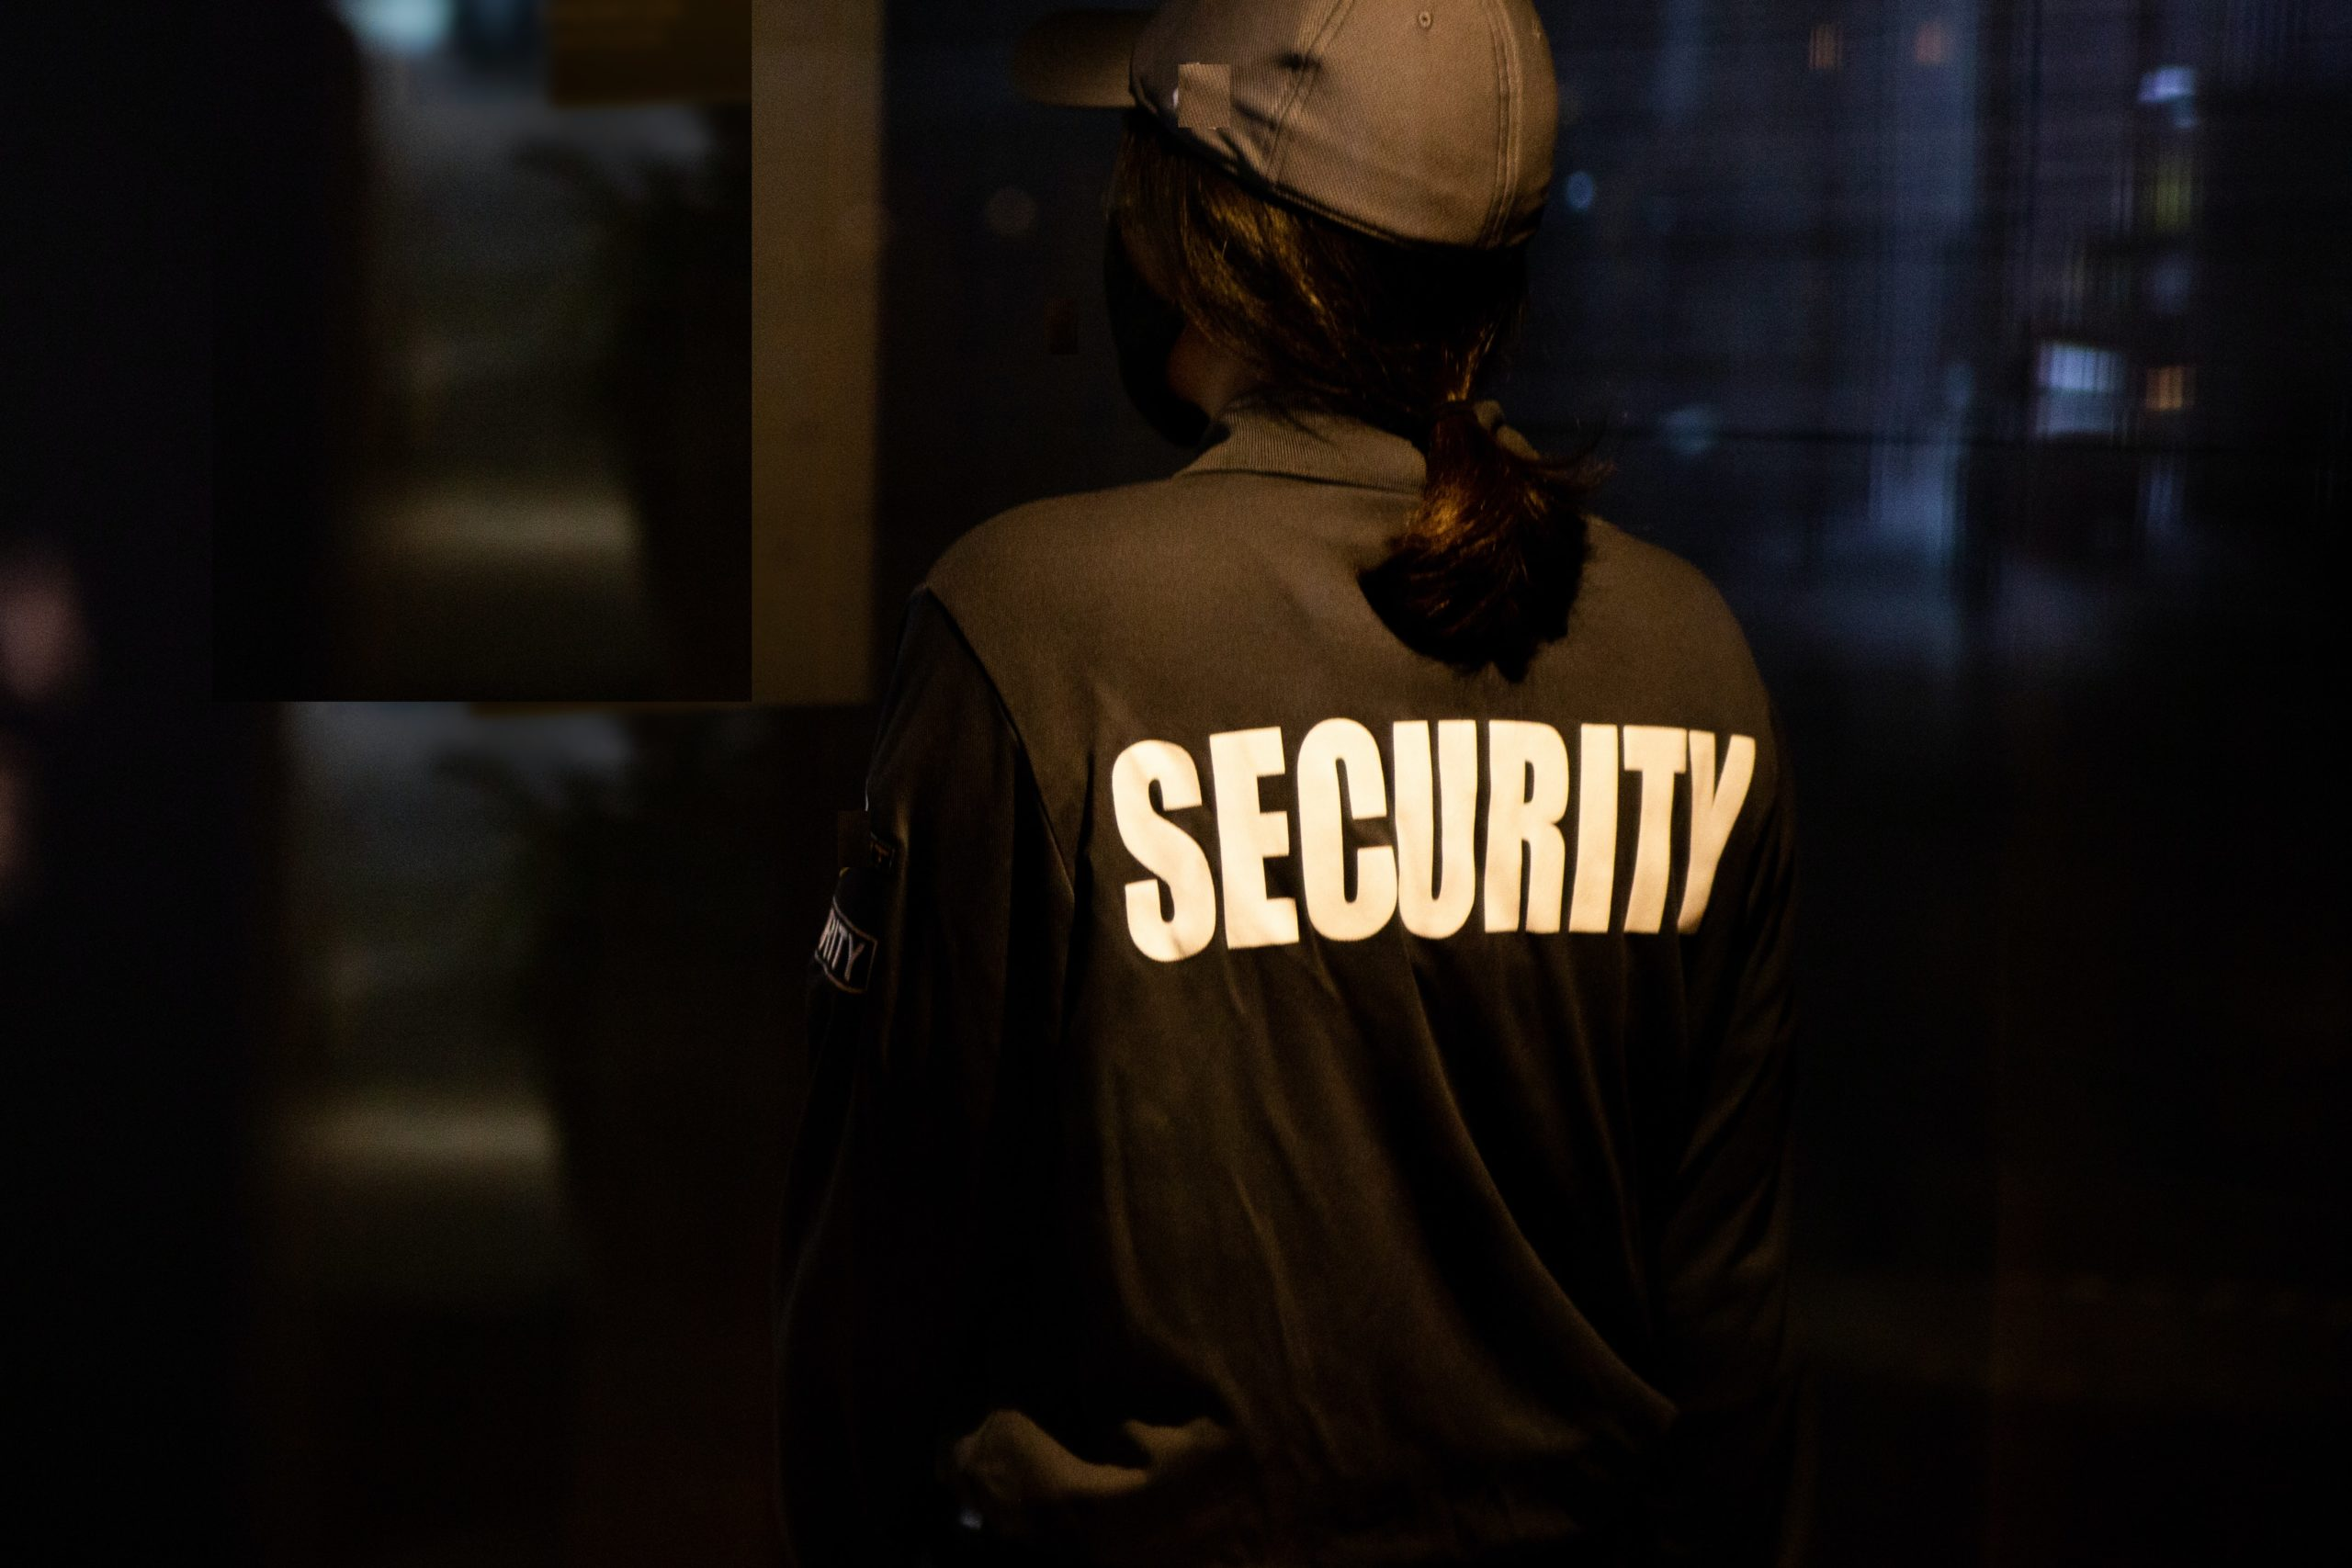 Dahua supports moms in security